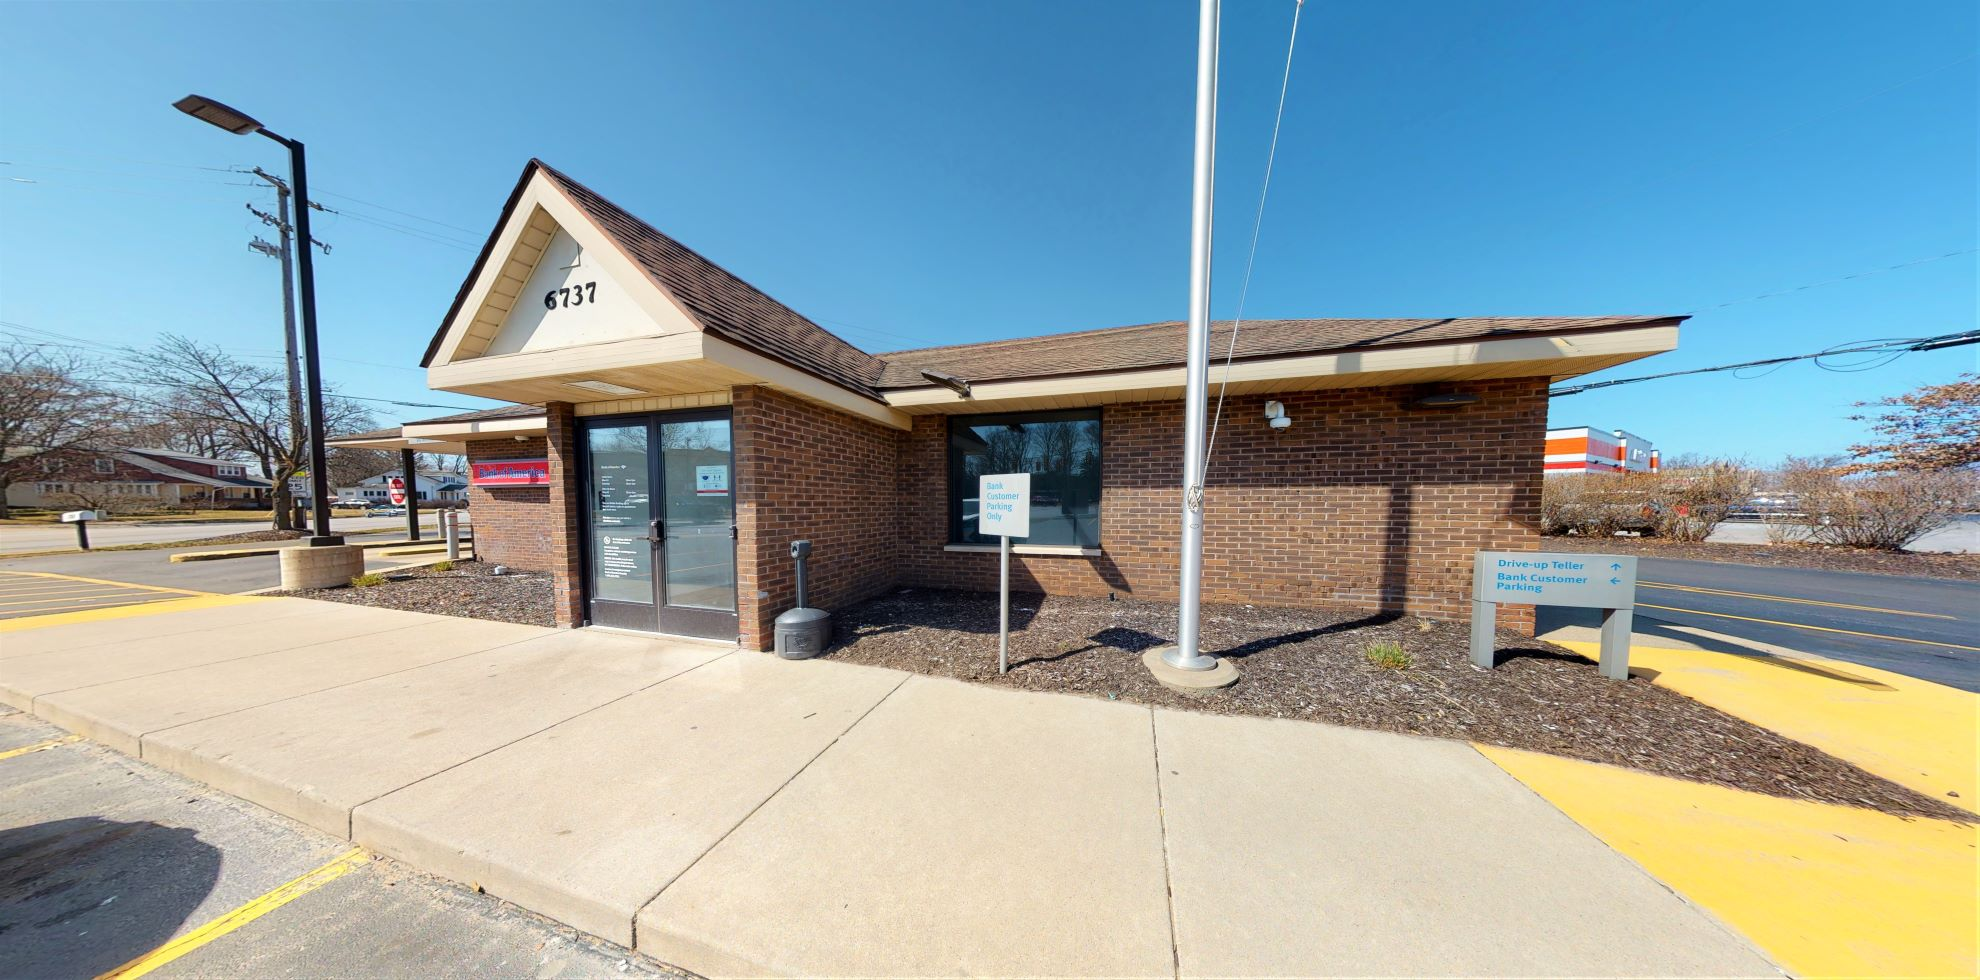 Bank of America financial center with drive-thru ATM and teller   6737 Division Ave S, Grand Rapids, MI 49548